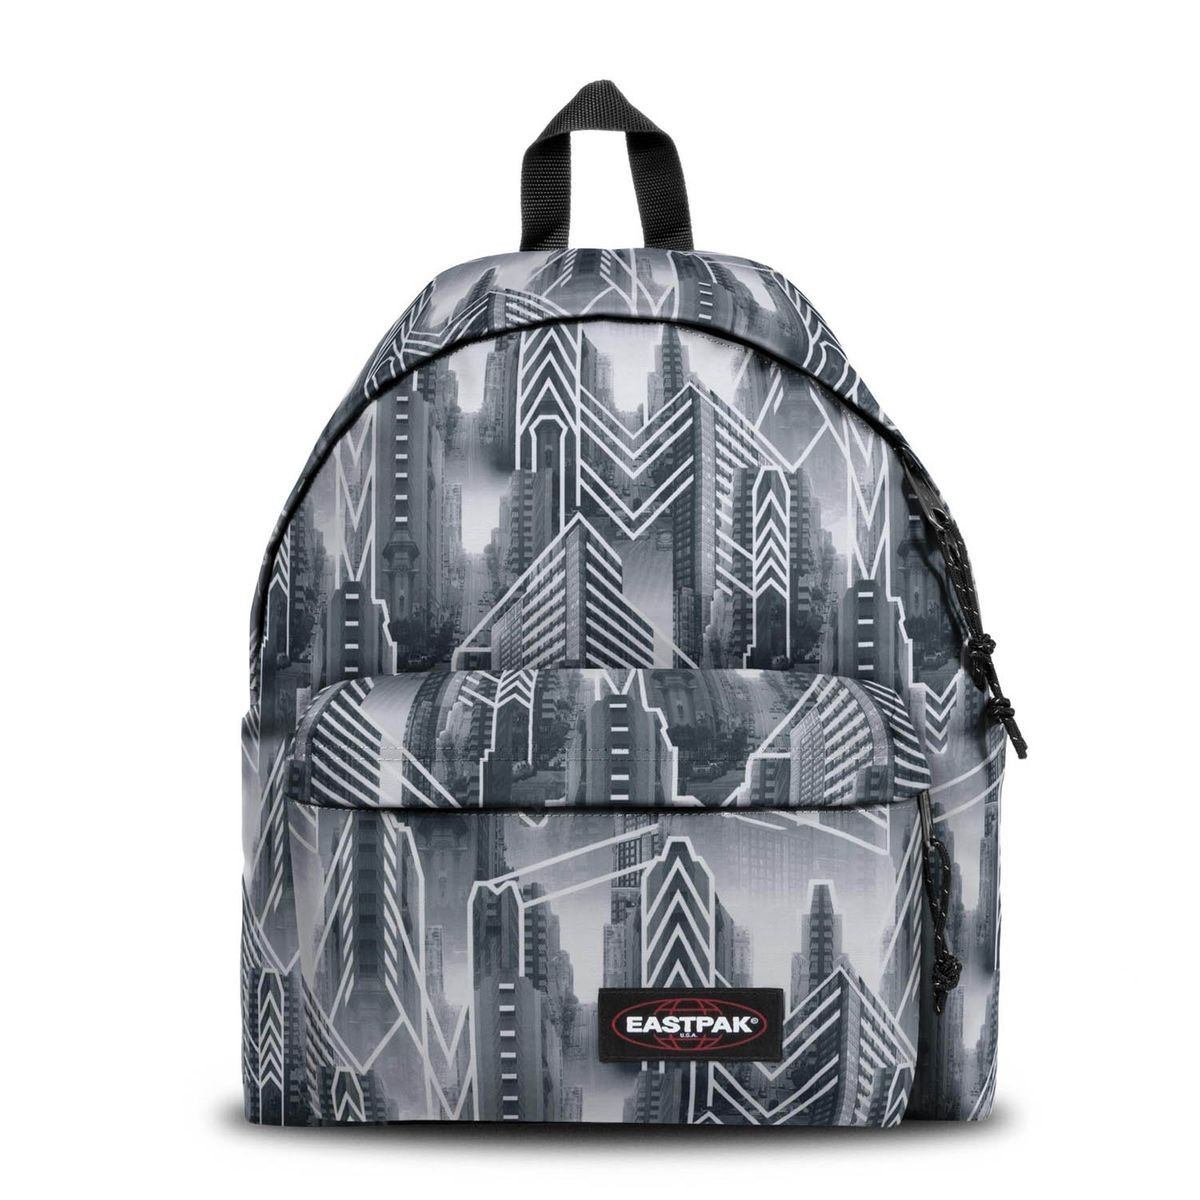 Synthétique En Authentic 2019 V015367 Padded Pak'r À Dos Sac a1qBZZ